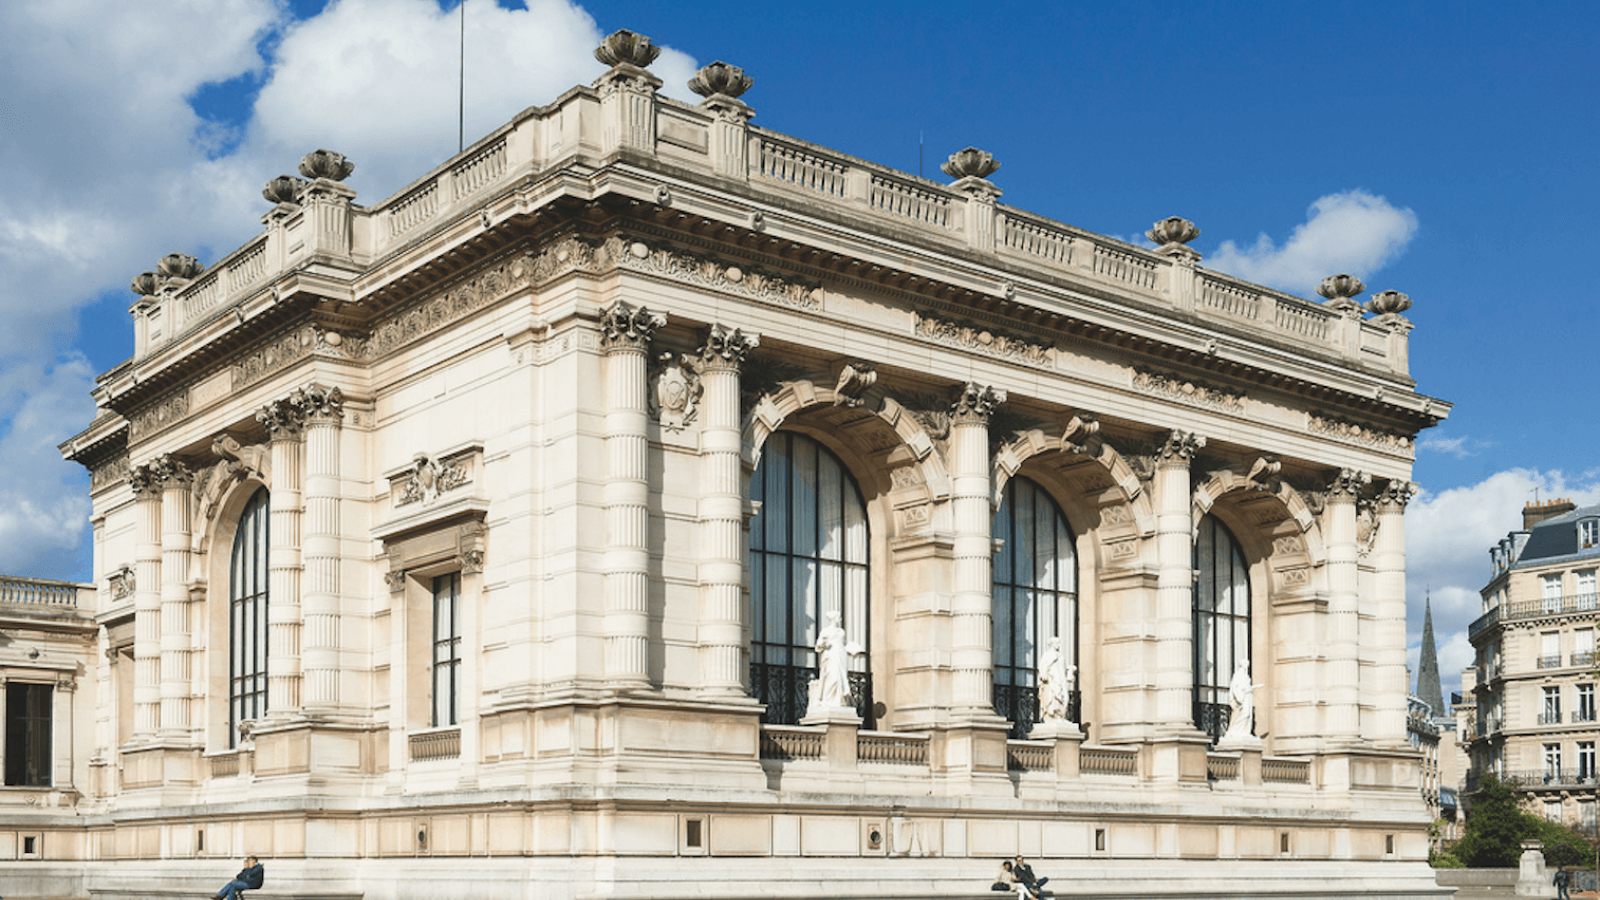 The Palais Galliera reopens with an exhibition featuring Chanel